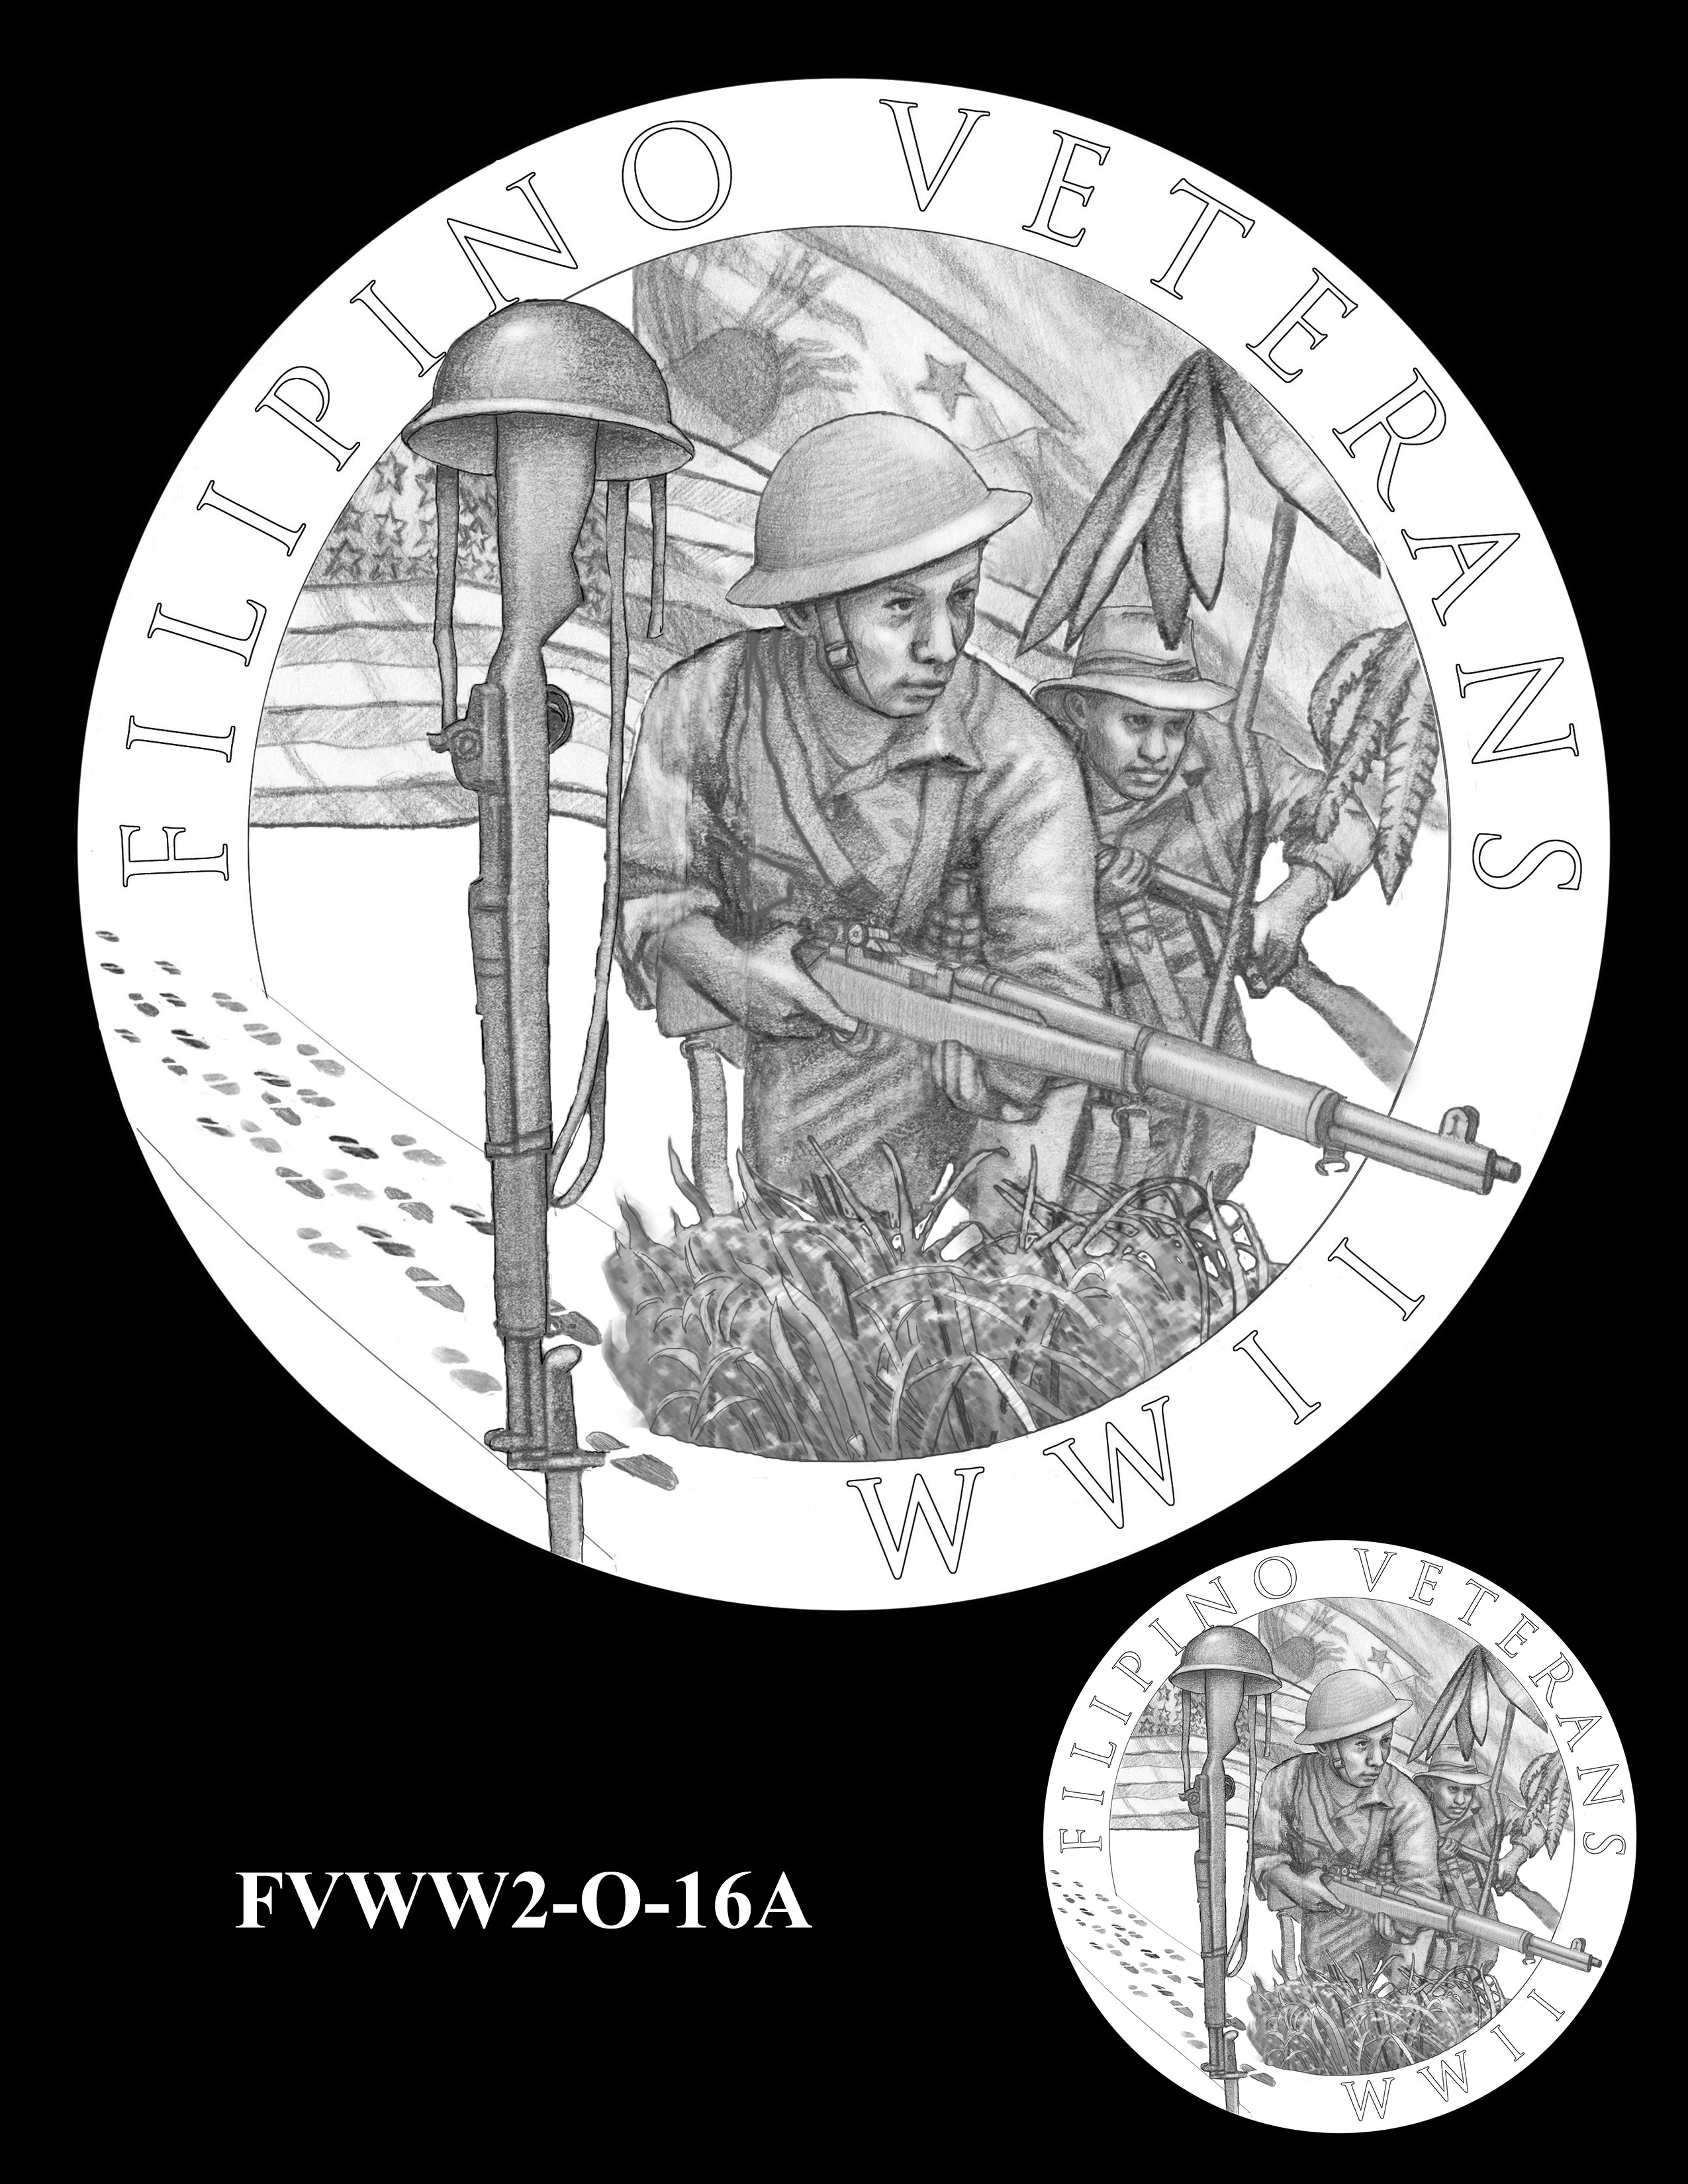 FVWW2-O-16A -- Filipino Veterans of World War II Congressional Gold Medal